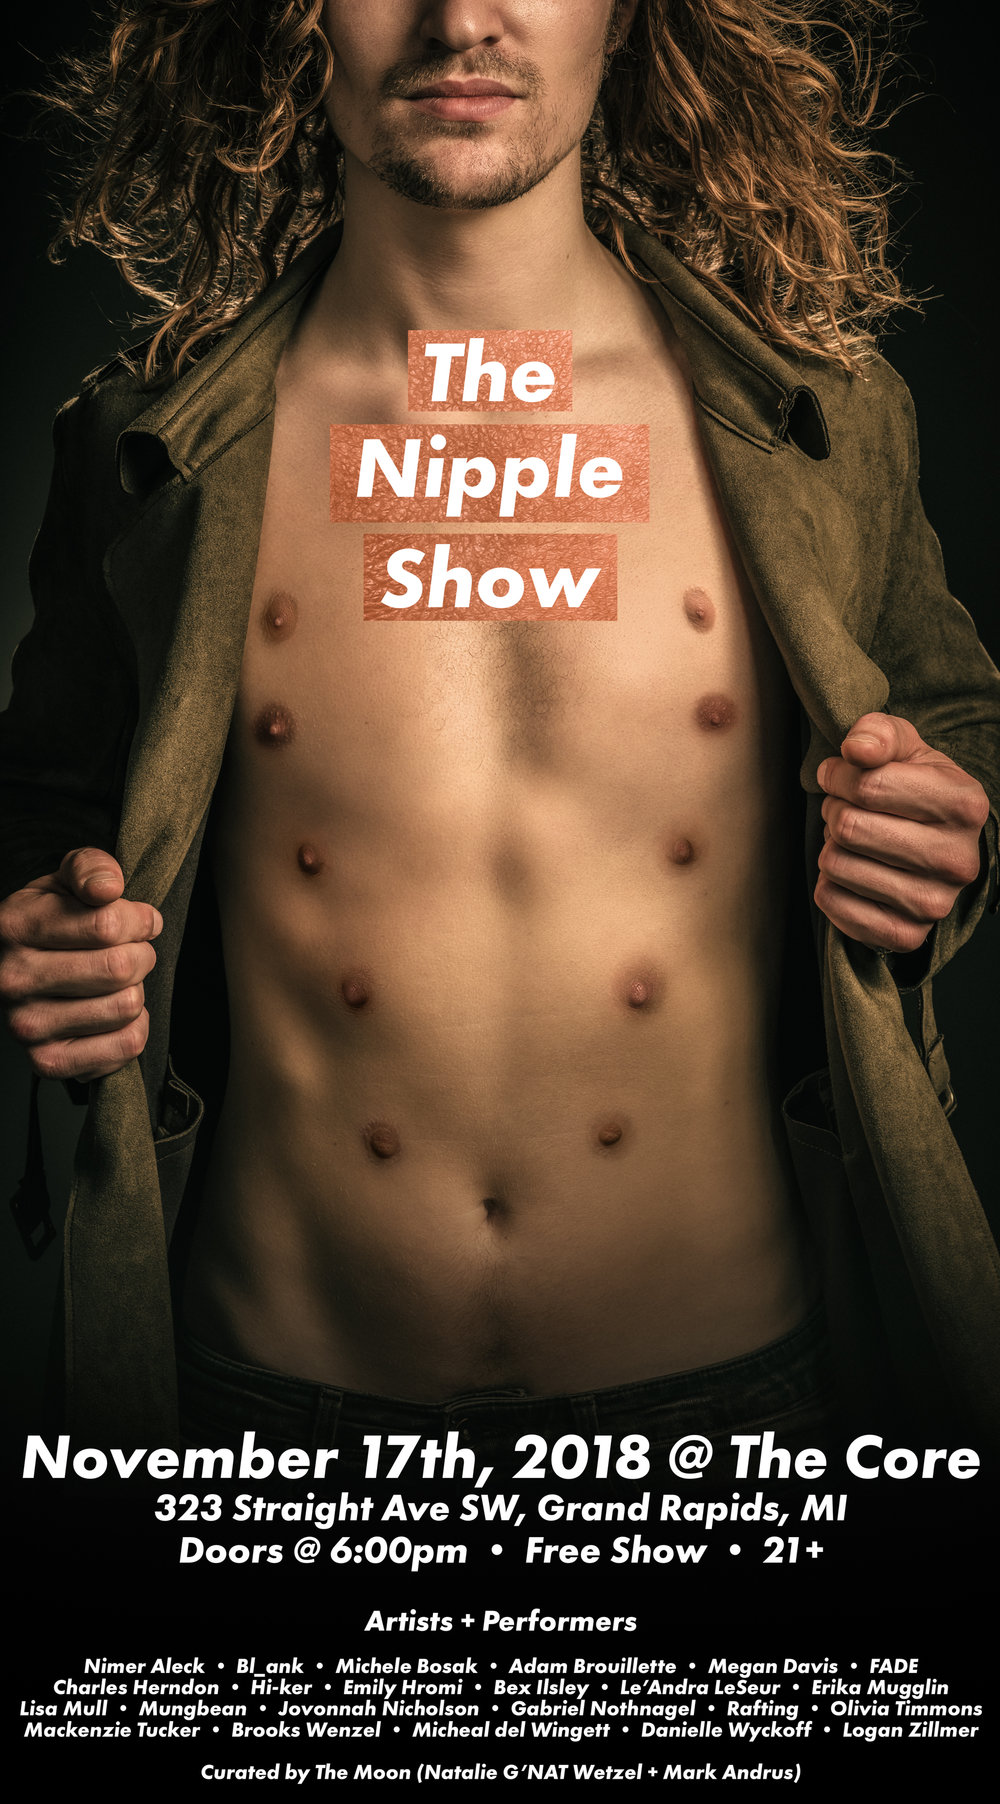 NippleShootPoster_Final_Full 3_Grain 3_Web.jpg